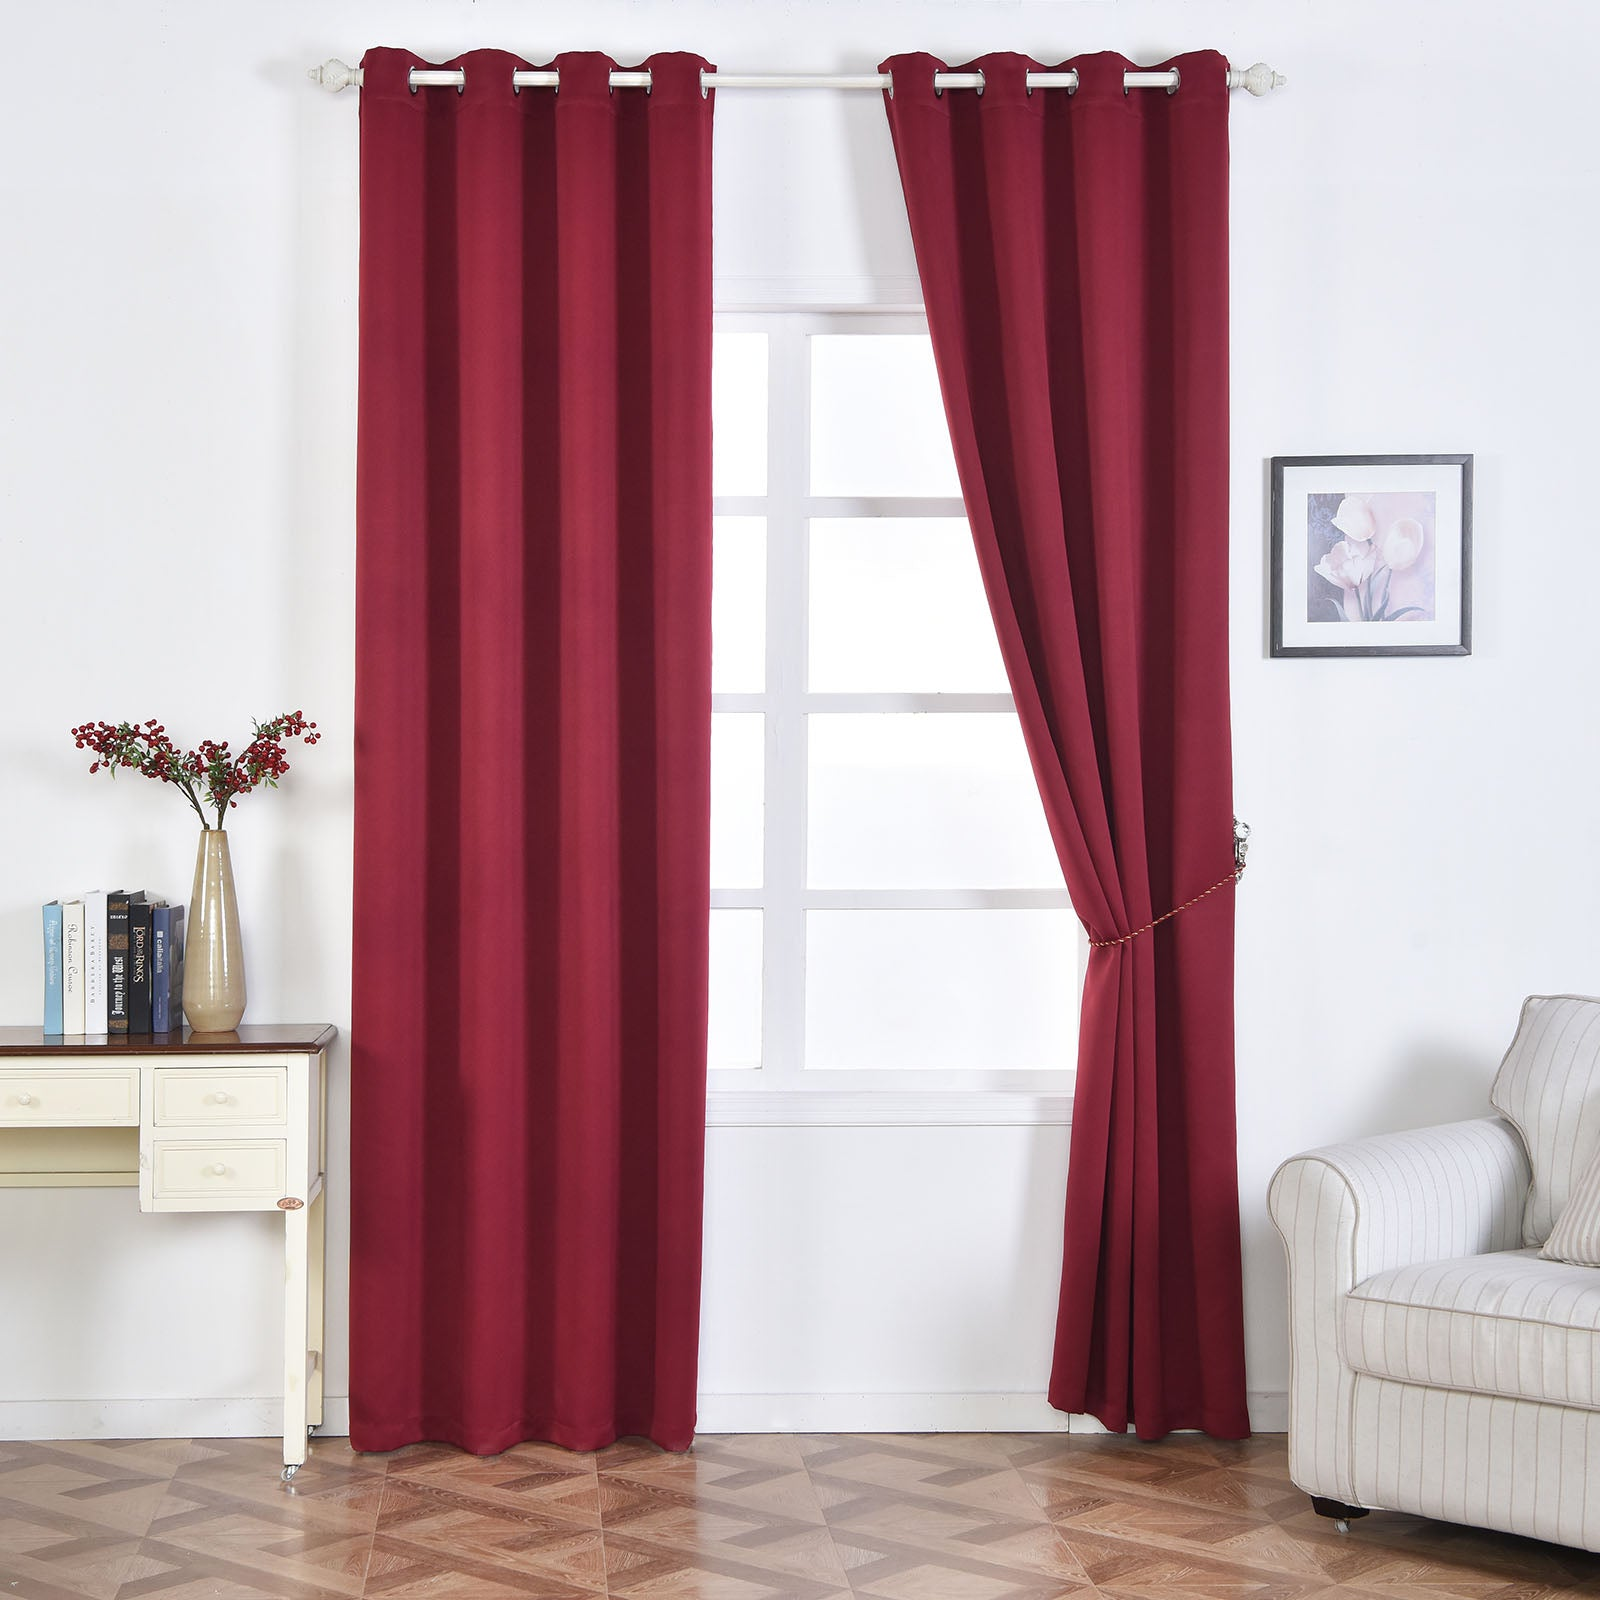 Blackout Curtains 52x108 Burgundy Pack Of 2 Thermal Insulated With Chrome Grommet Window Treatment Panels